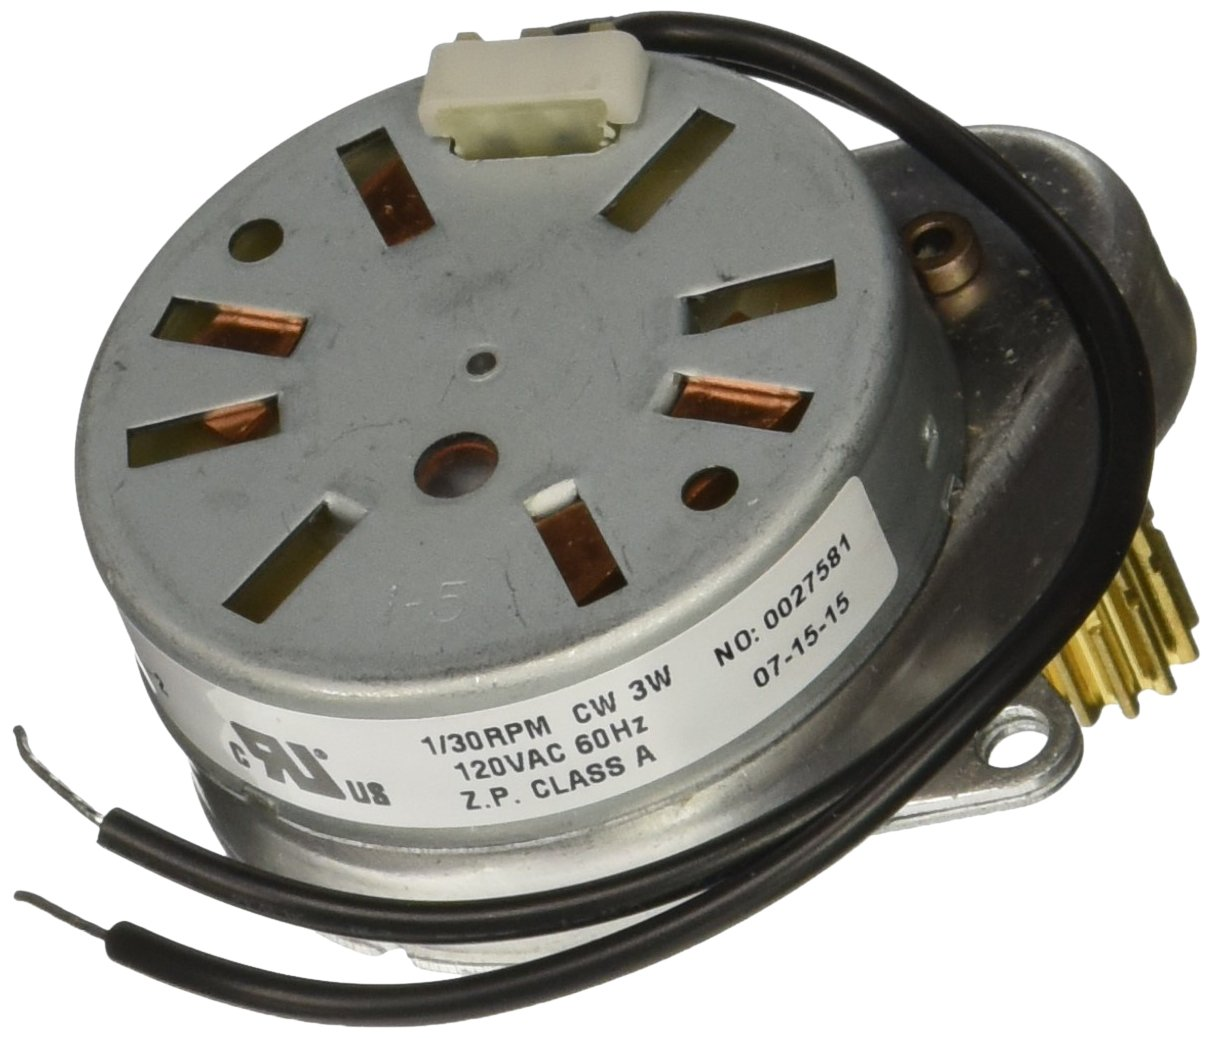 Fleck 5600 Replacement Timer & Piston Drive Motor - Genuine Fleck Part# 18743